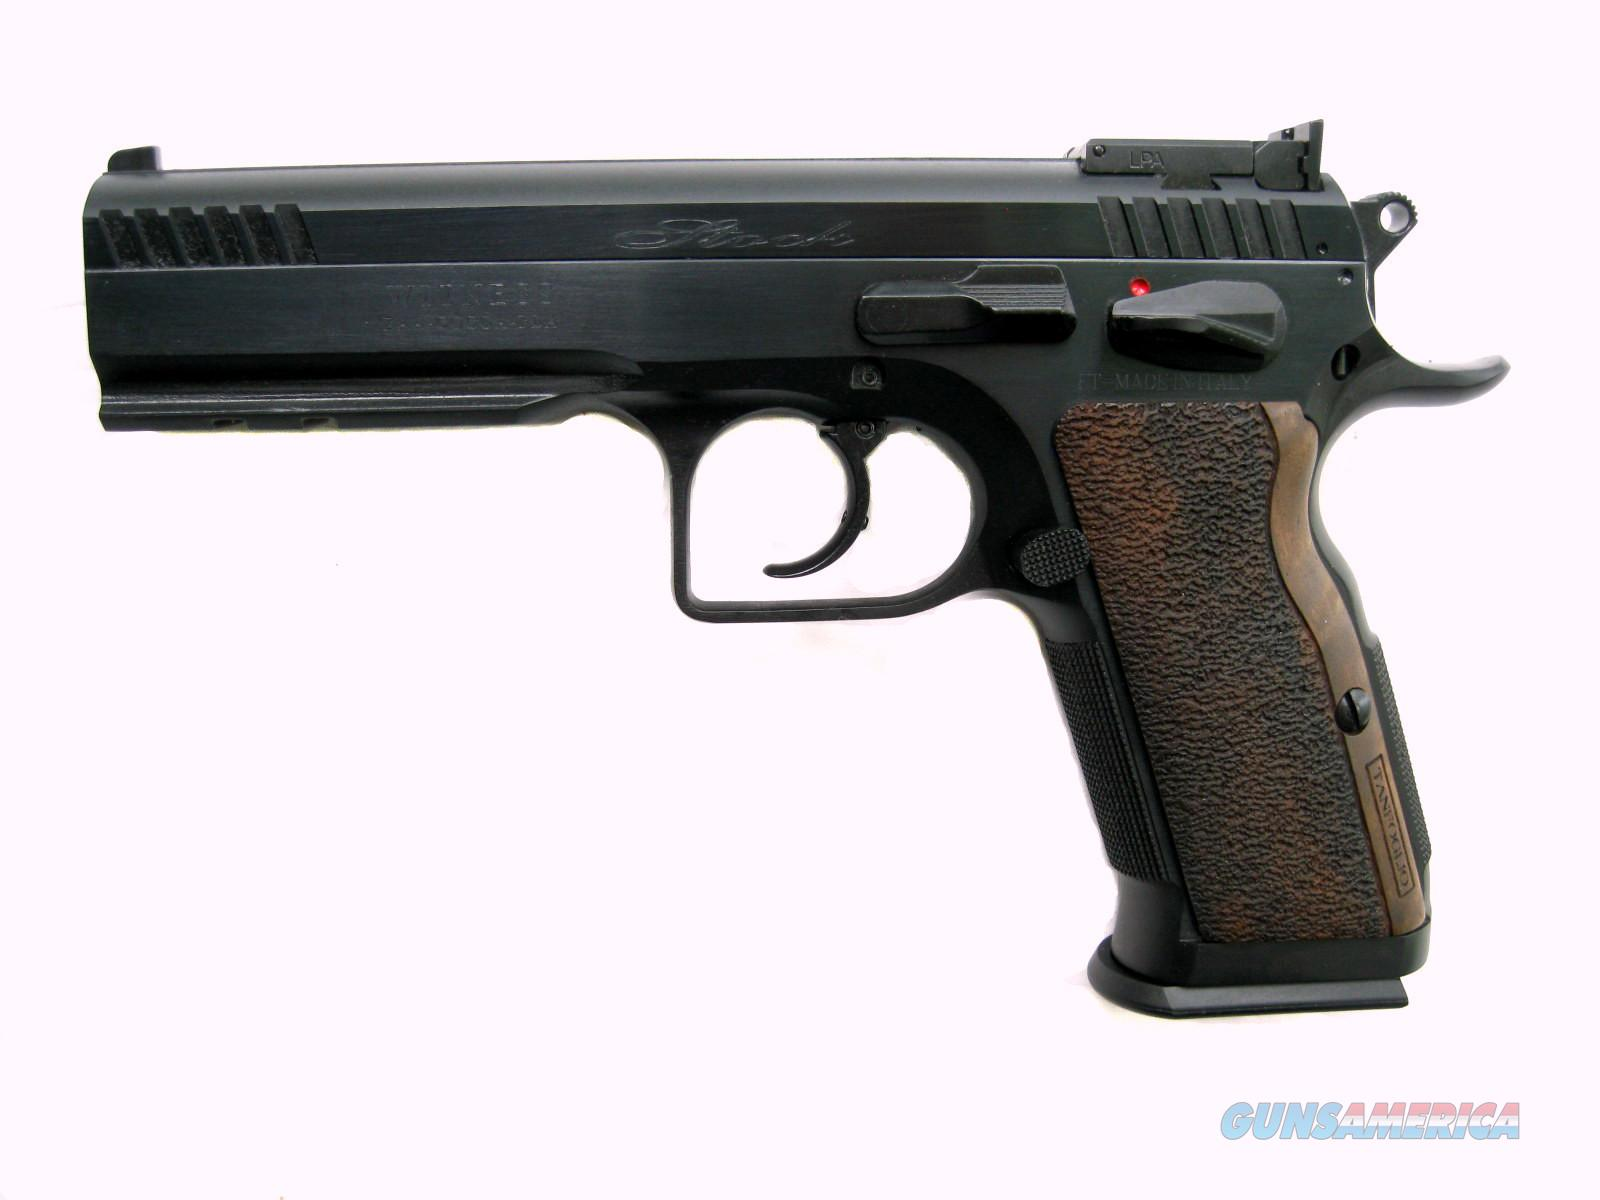 EAA Stock III .40 S&W Tanfoglio Elite Series Bull Barrel Rail 600590 *NEW* Stock 3  Guns > Pistols > EAA Pistols > Other